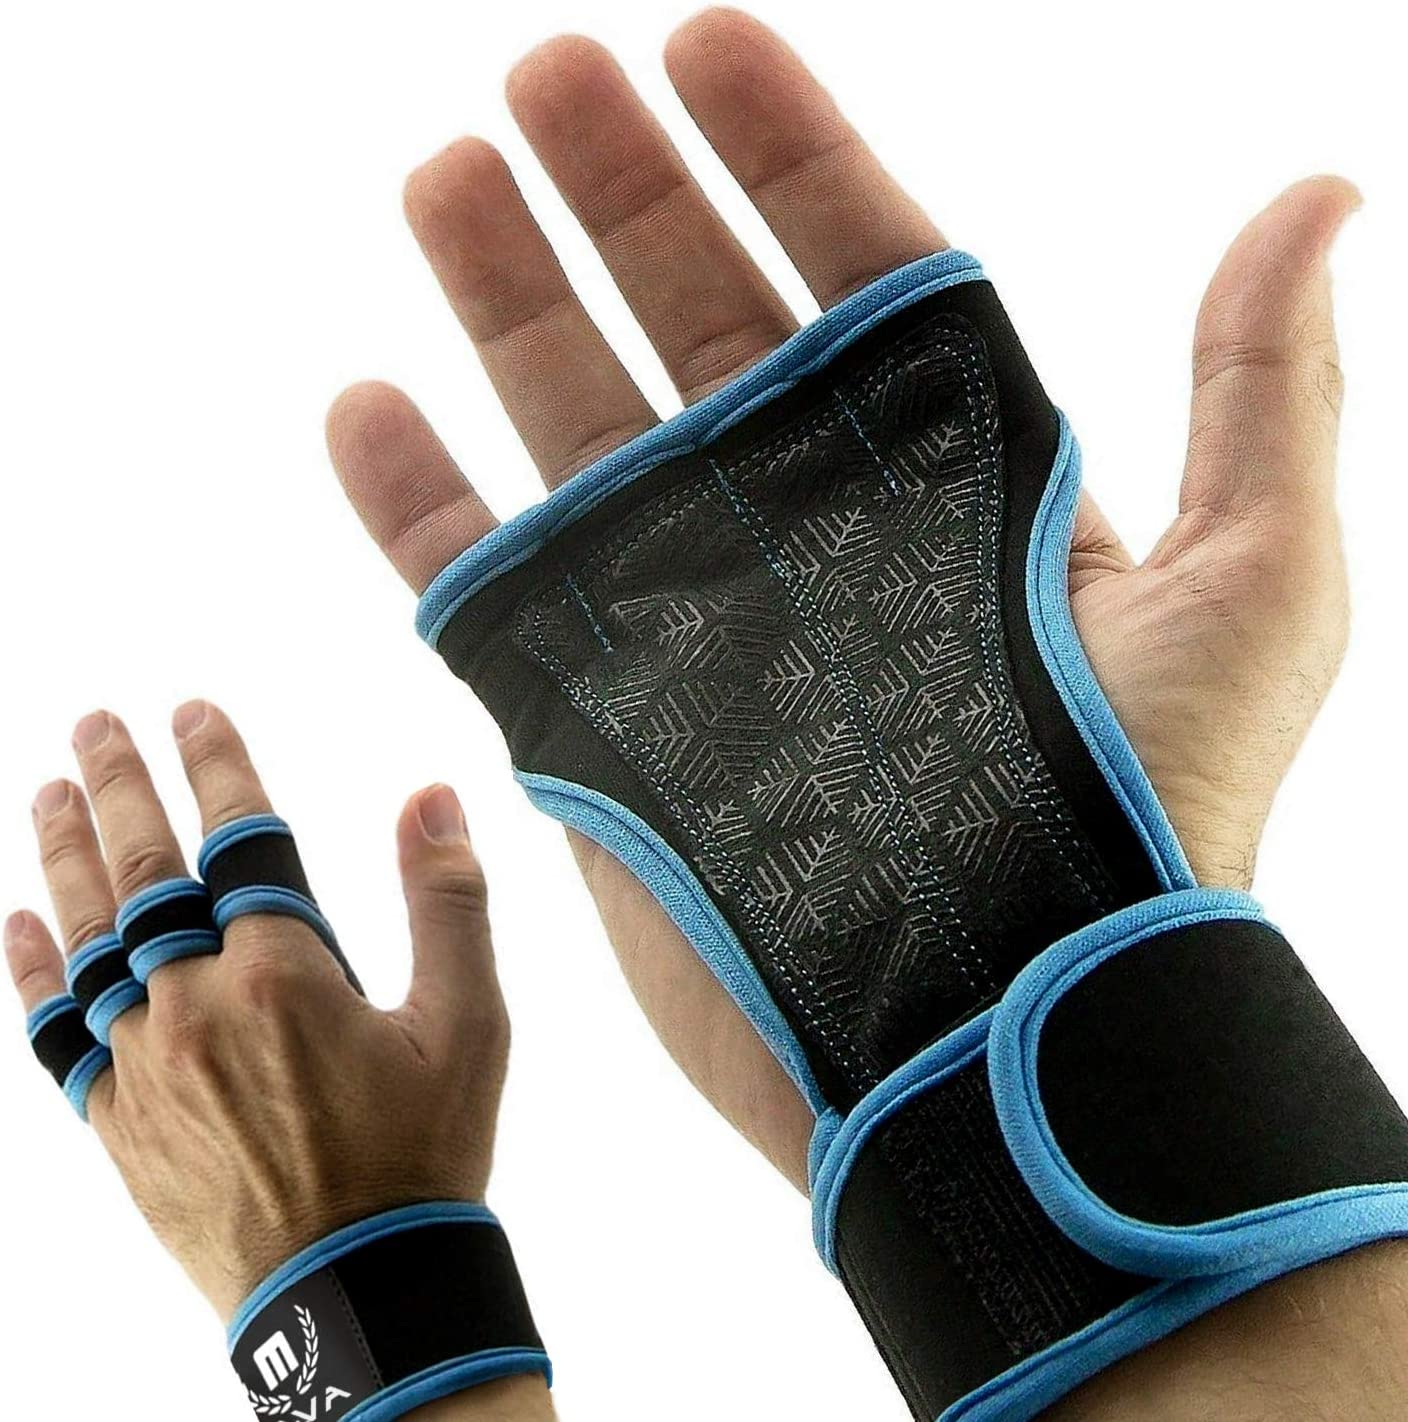 Cross Training Gloves with Wrist Support for WODs,Gym Workout,Weightlifting & Fitness-Silicone Padding, No Calluses-Suits Men & Women-Weight Lifting Gloves for a Strong Grip